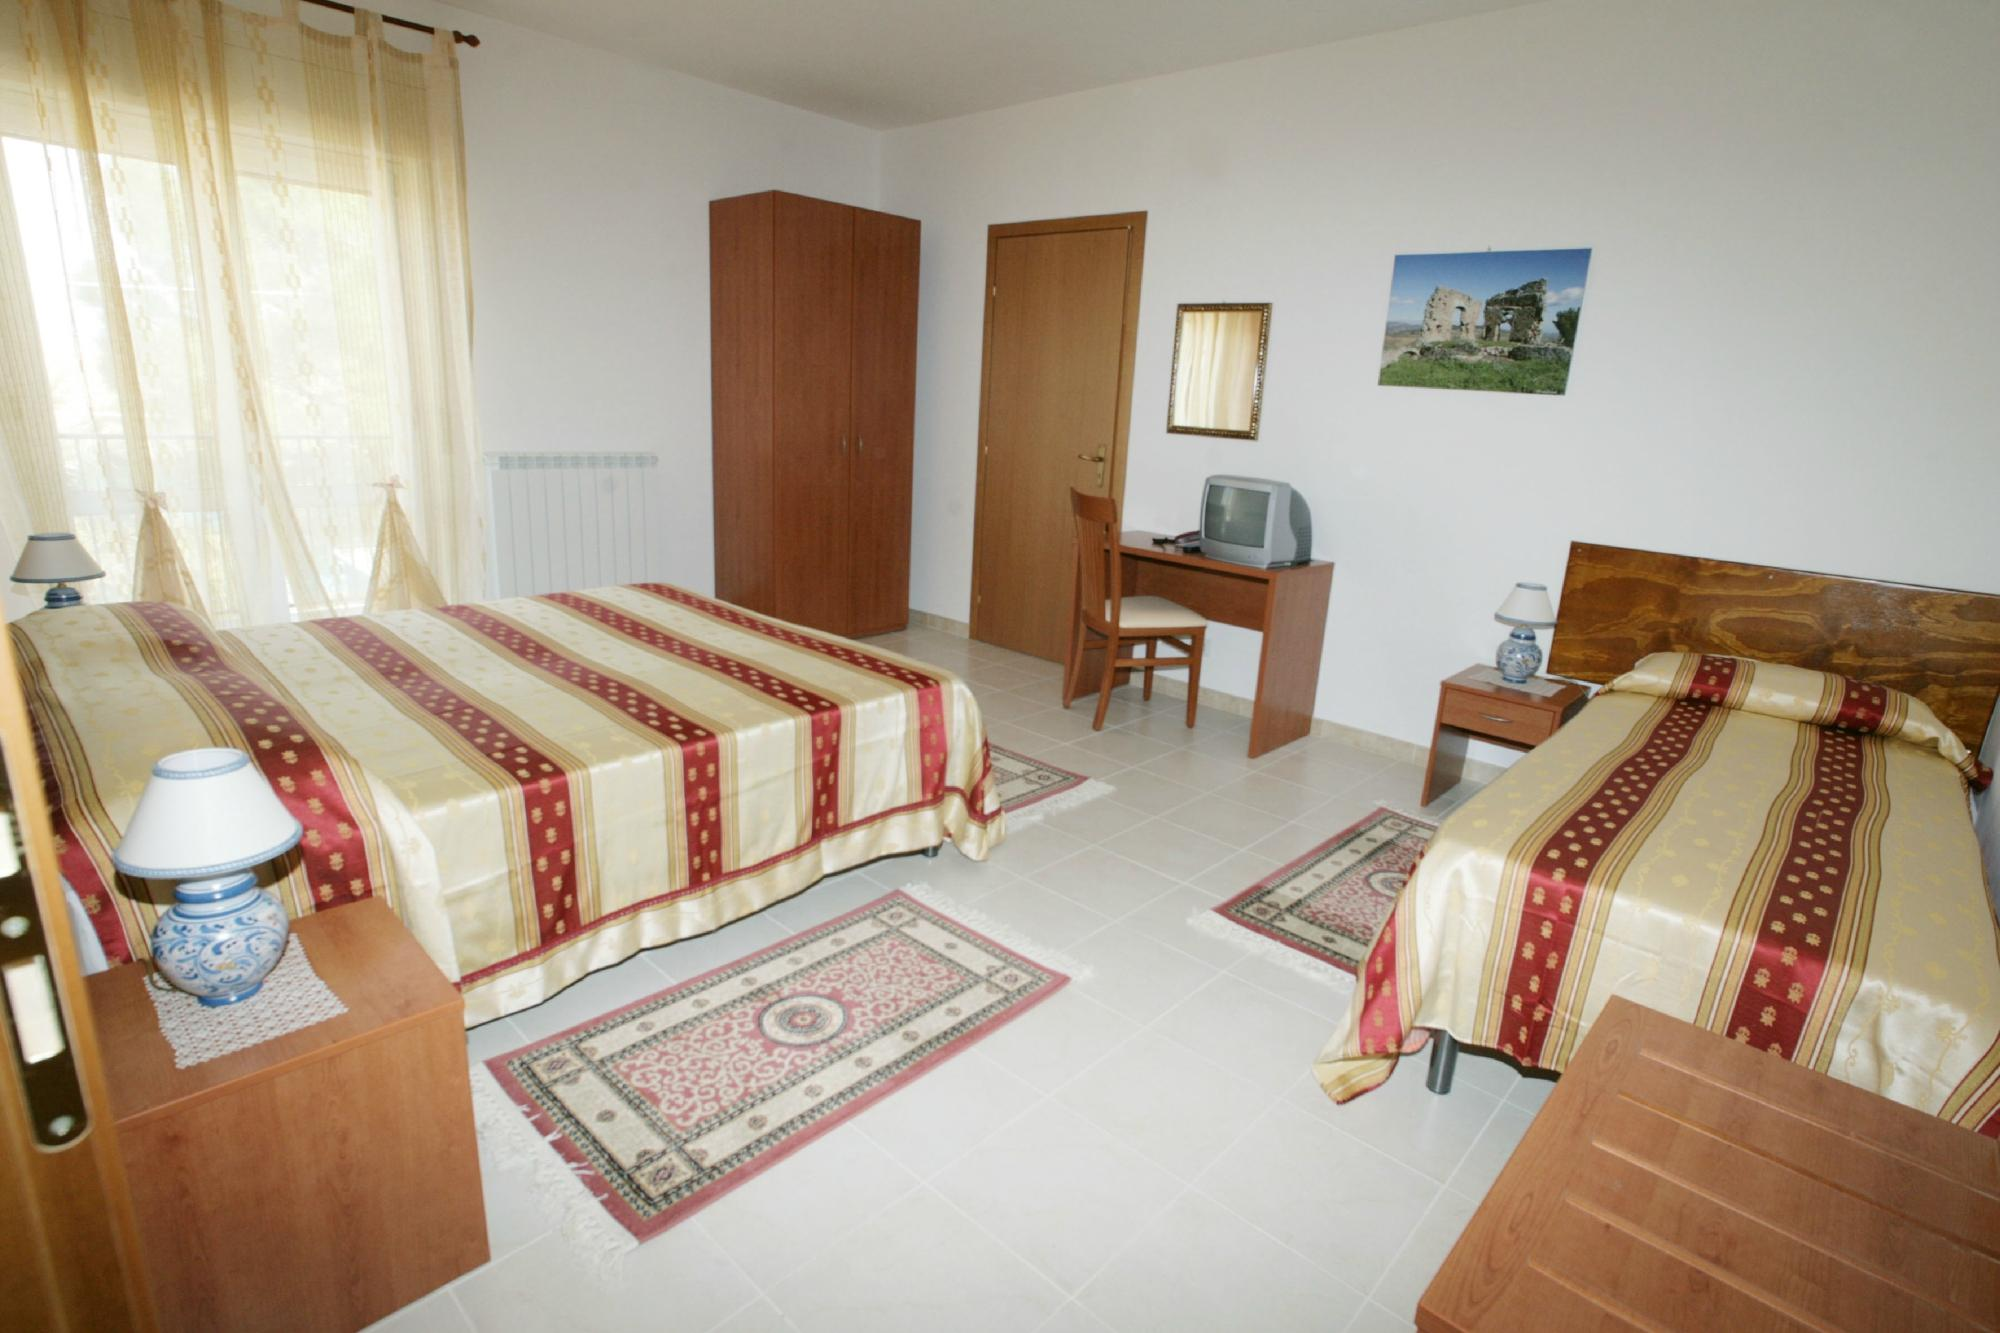 La Ganzaria Bed & Breakfast